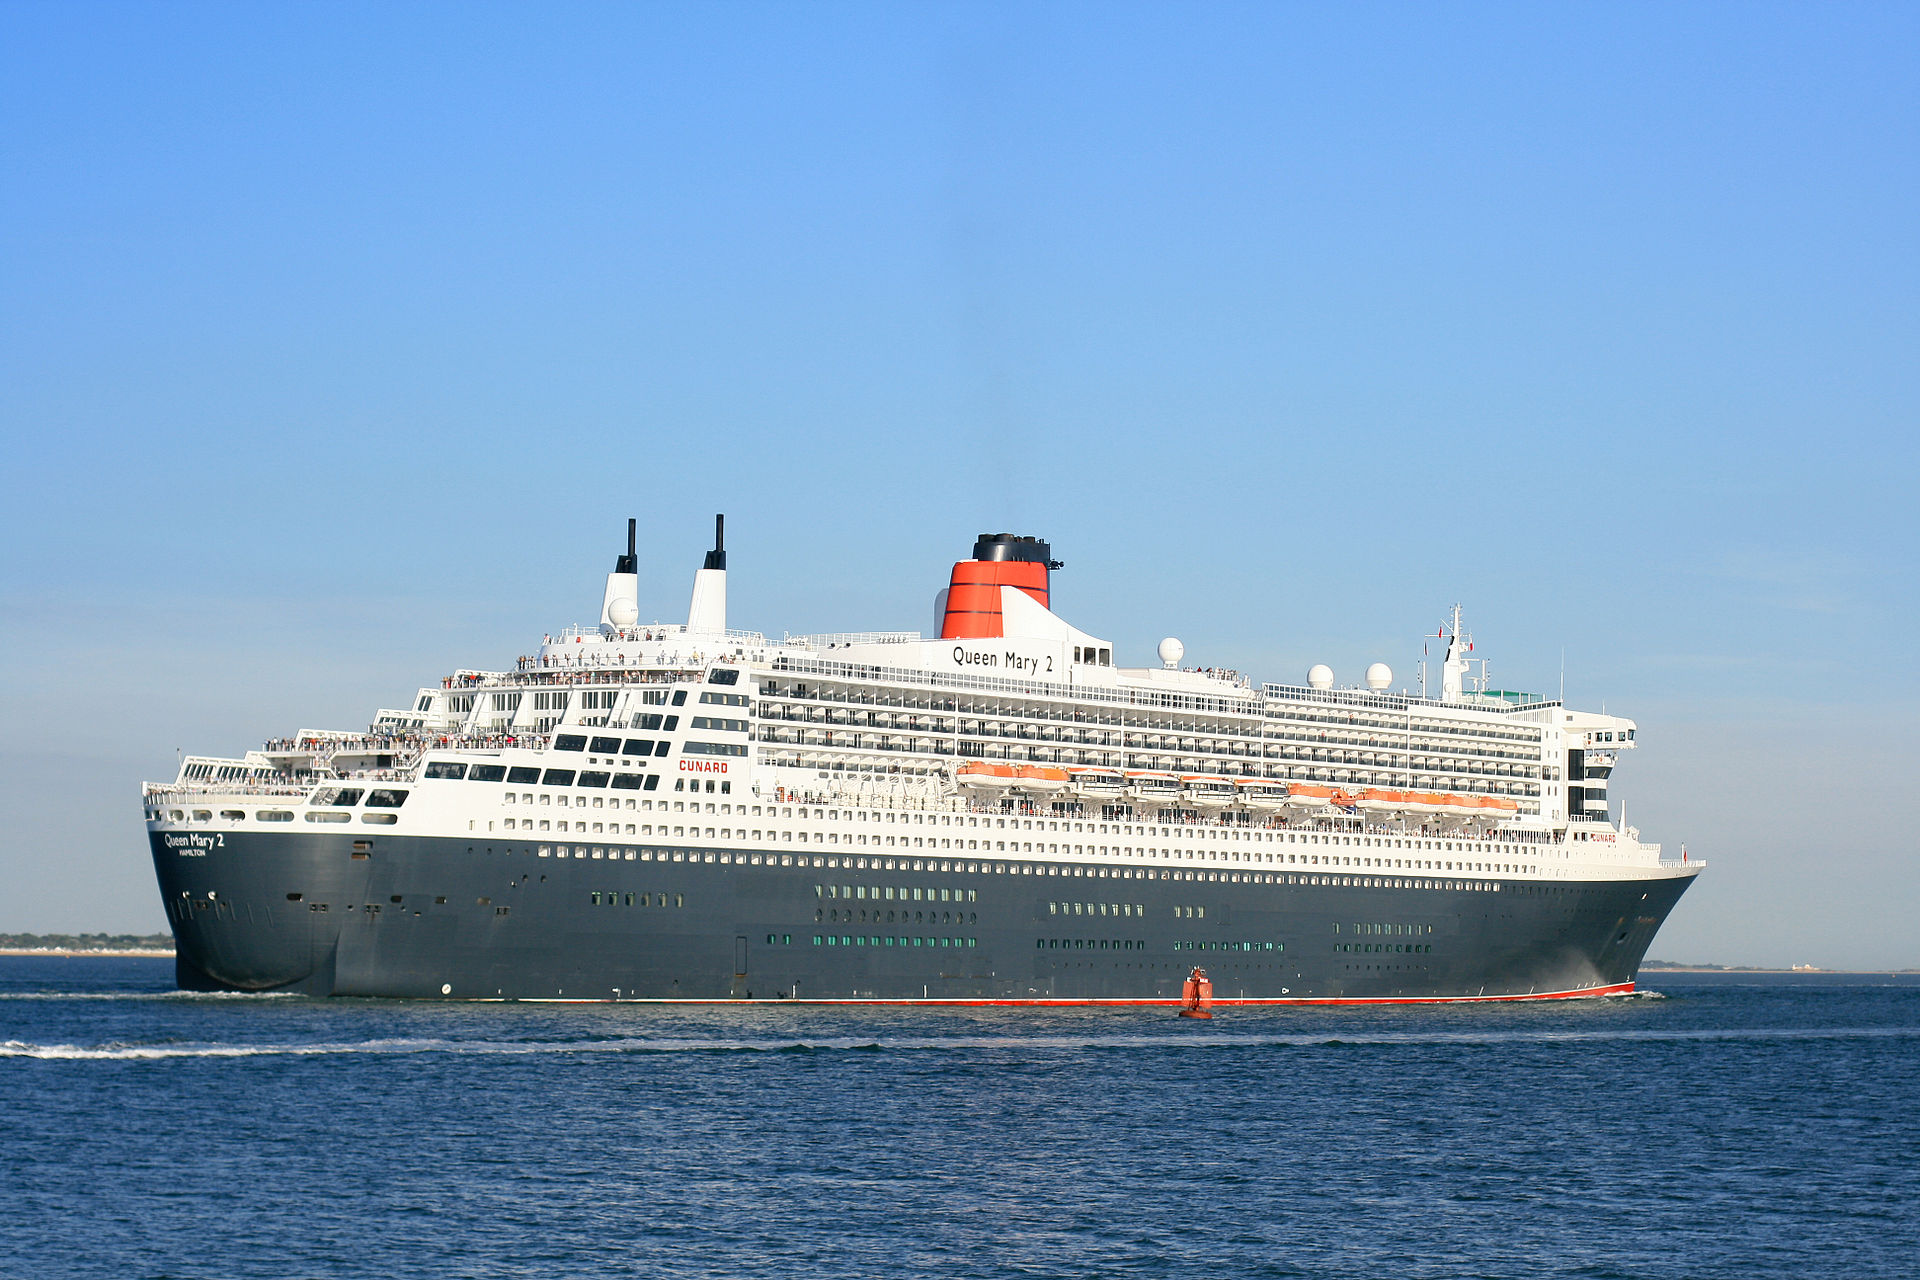 rms queen mary 2 wikipedia. Black Bedroom Furniture Sets. Home Design Ideas